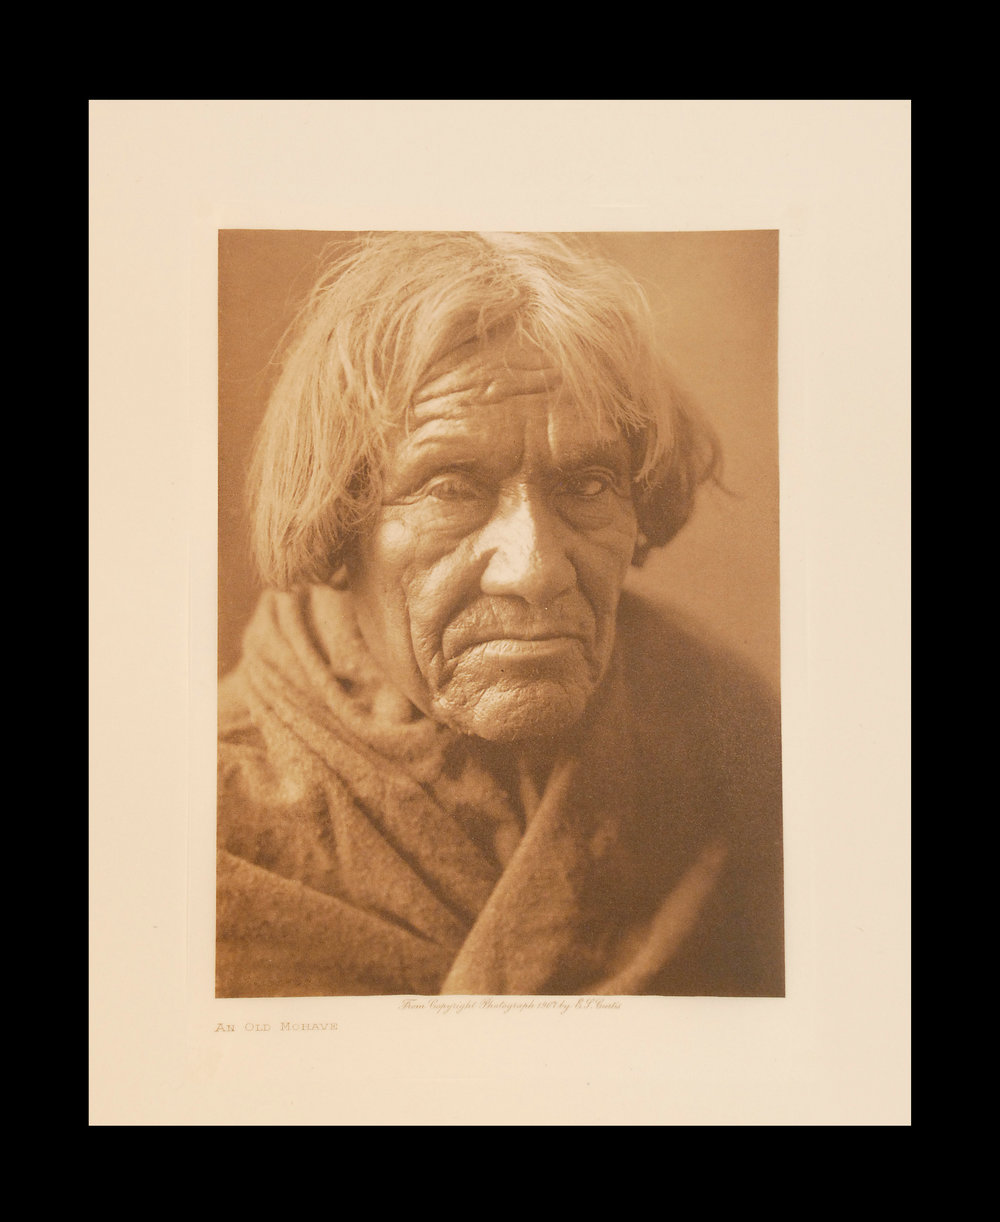 """An Old Mohave""  1907  Vol.2                        Tissue Print,  Vintage Photogravure"